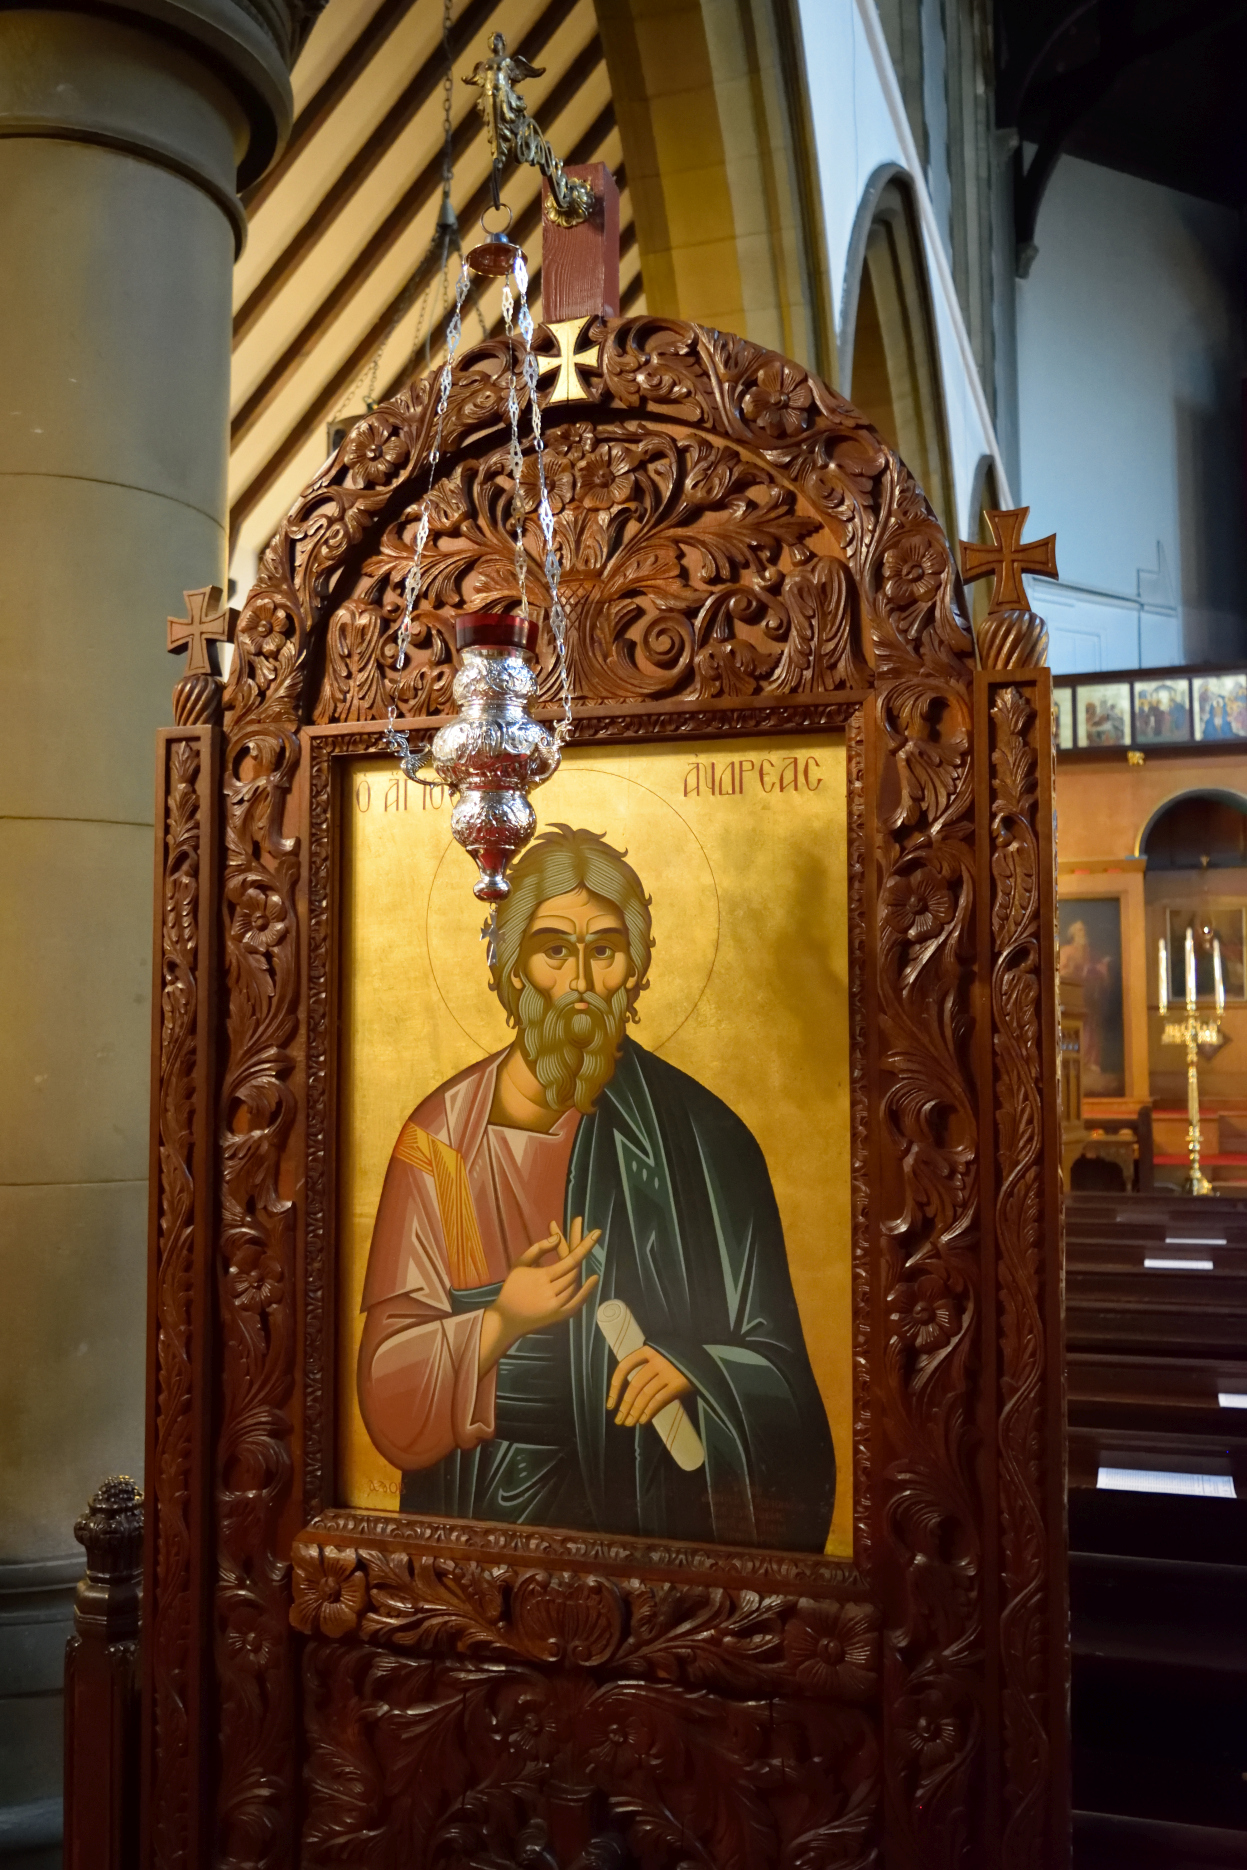 Saint Andrew icon - patron of Scotland